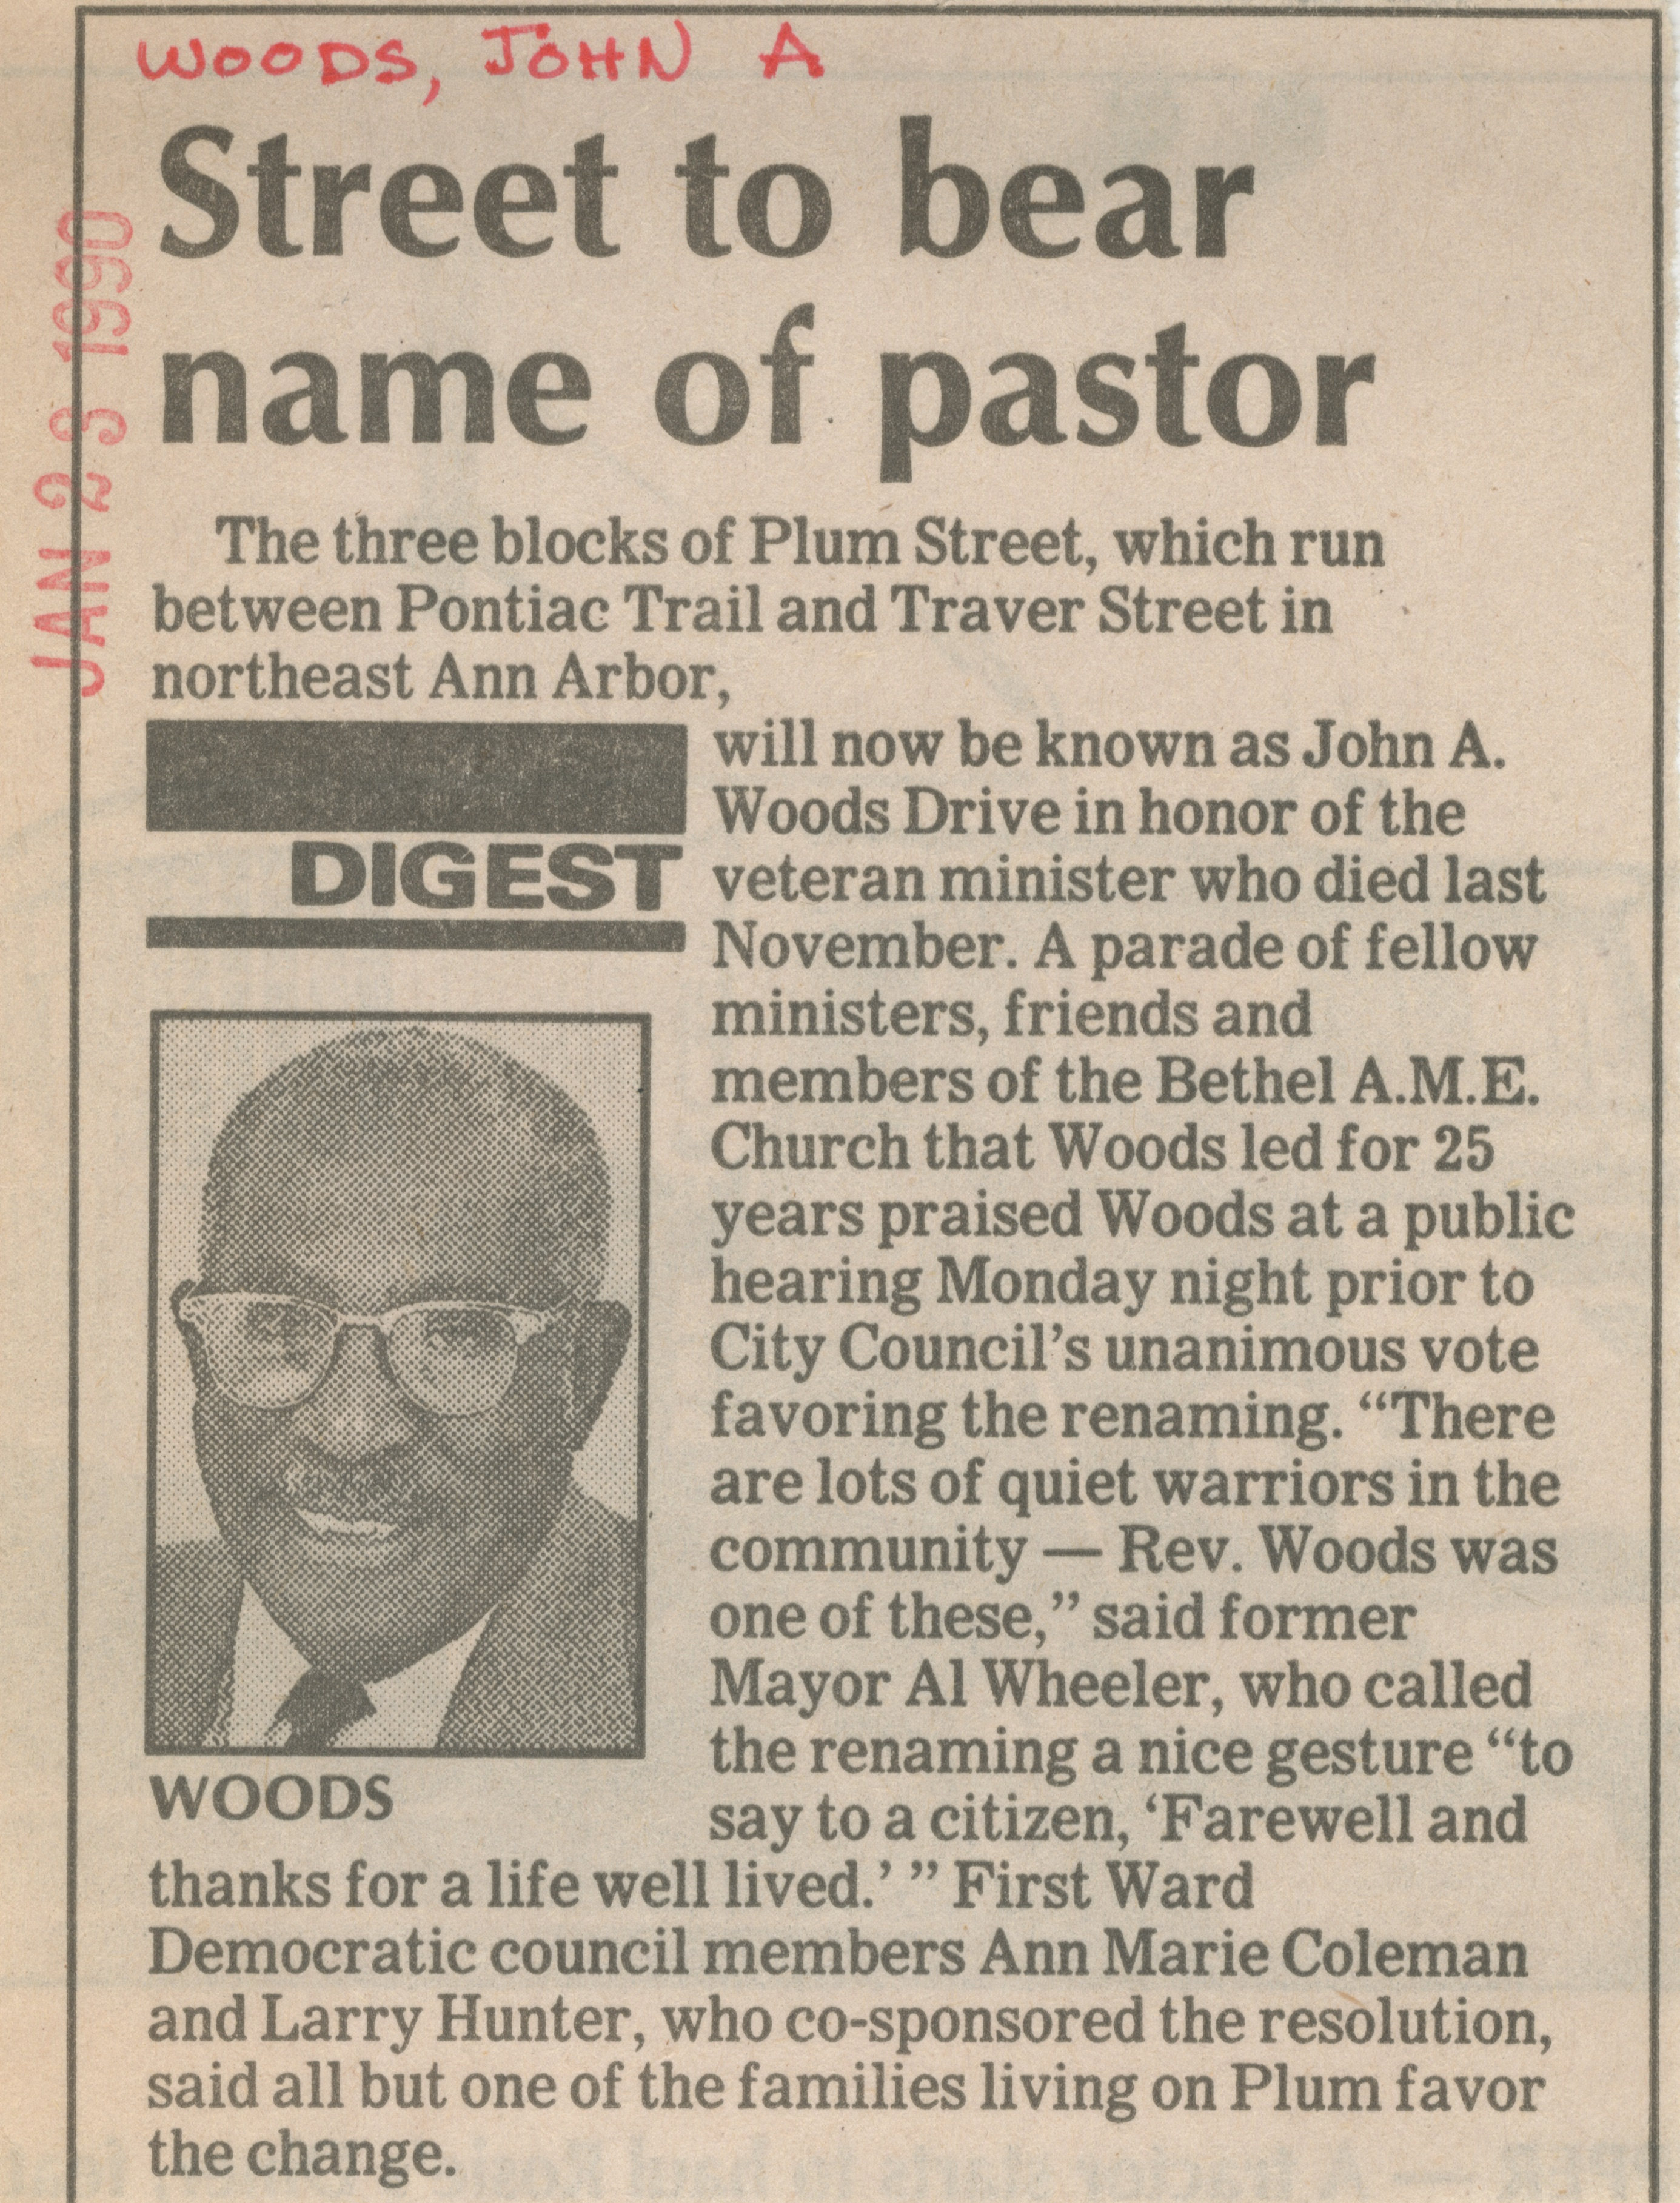 Street to bear name of pastor image